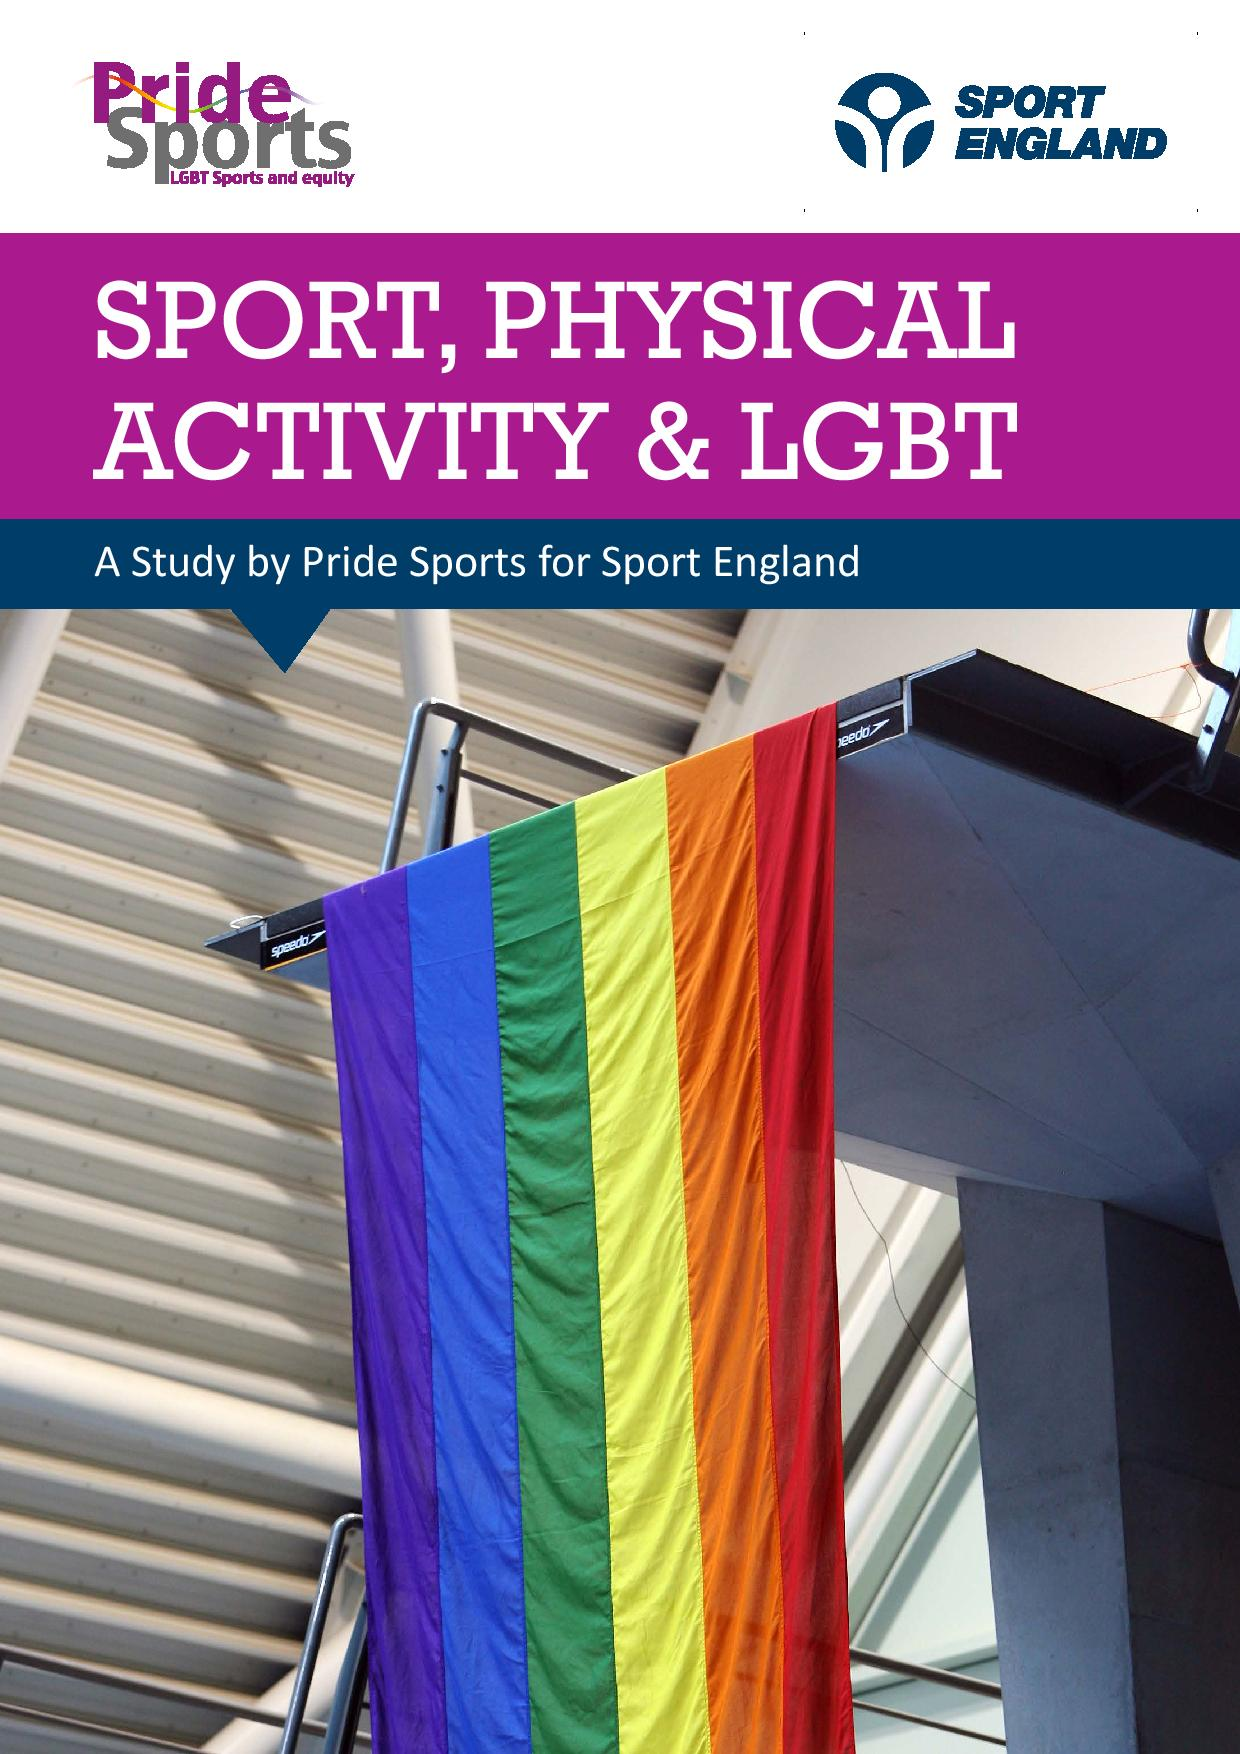 pride-sport-sport-physical-activity-and-lgbt-report-2016-page-001